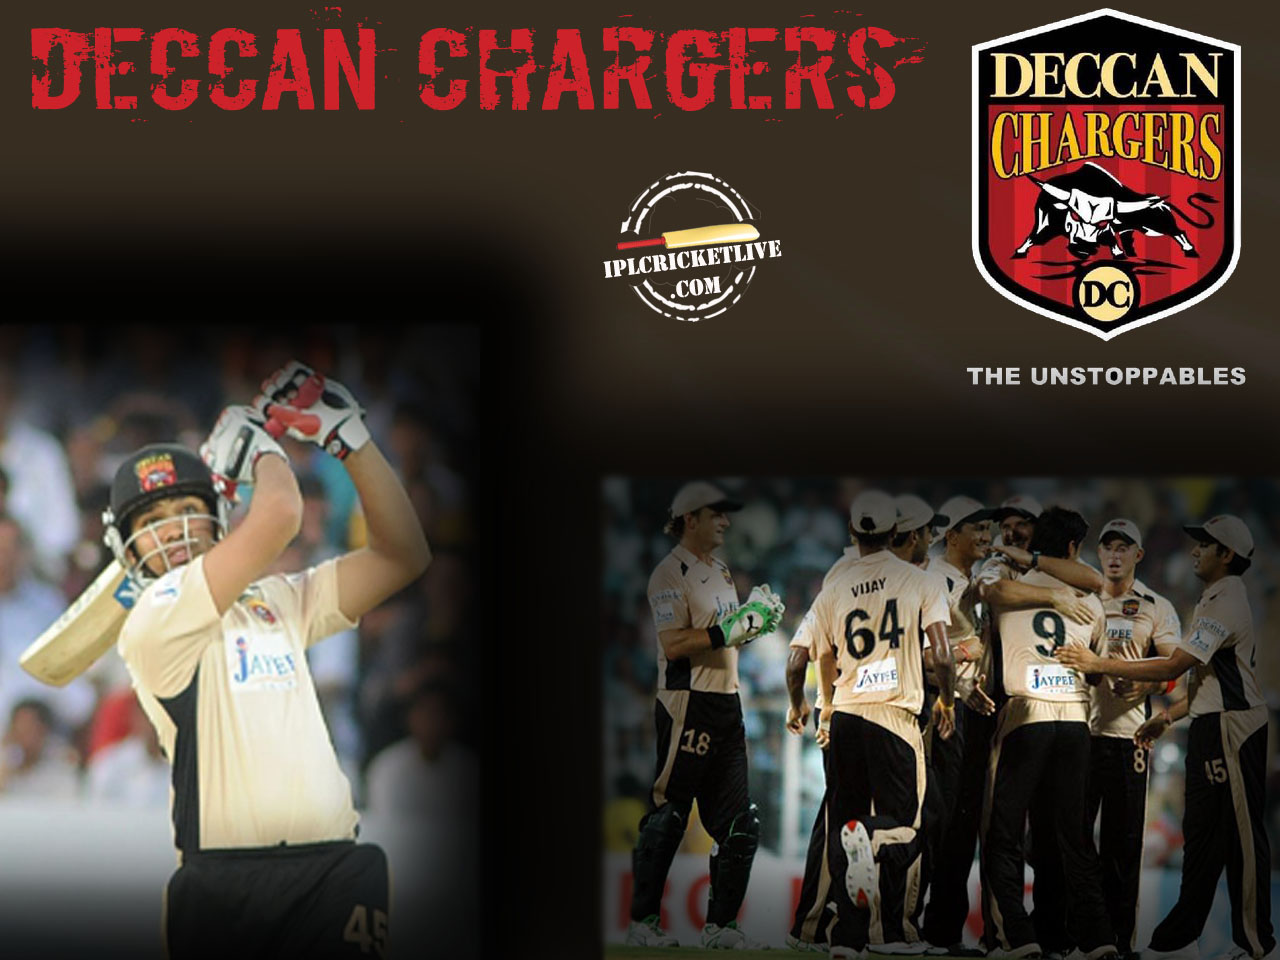 Deccan Chargers Wallpaper